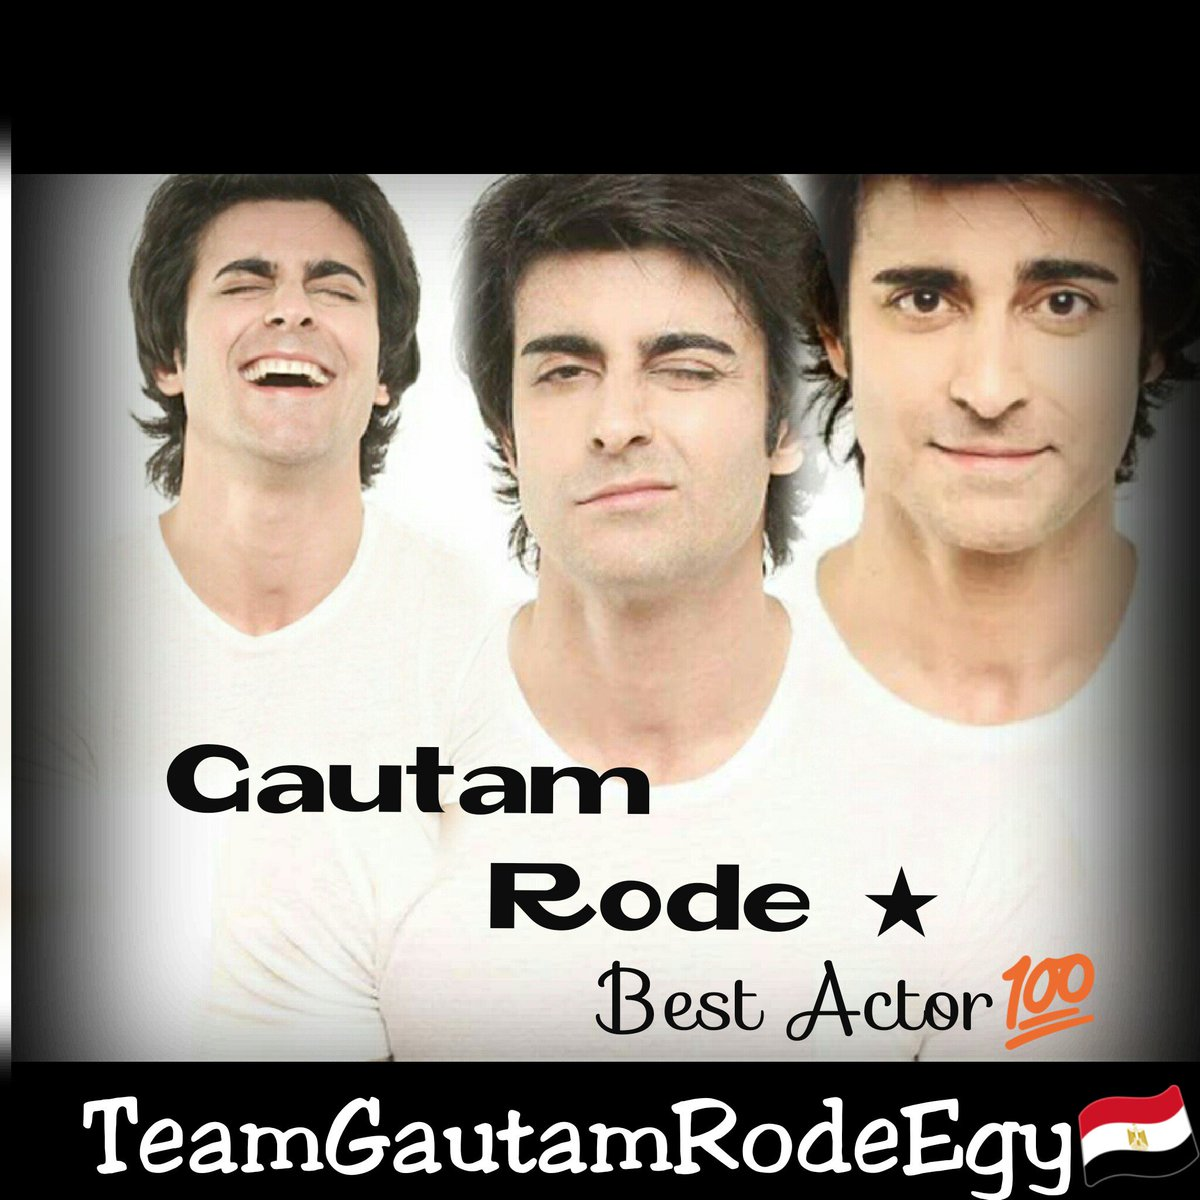 Adore those expressions Looking Gorgeous  #BestActor  #Handsome #GautamRode  @gautam_rode<br>http://pic.twitter.com/GEN3fiFbuq